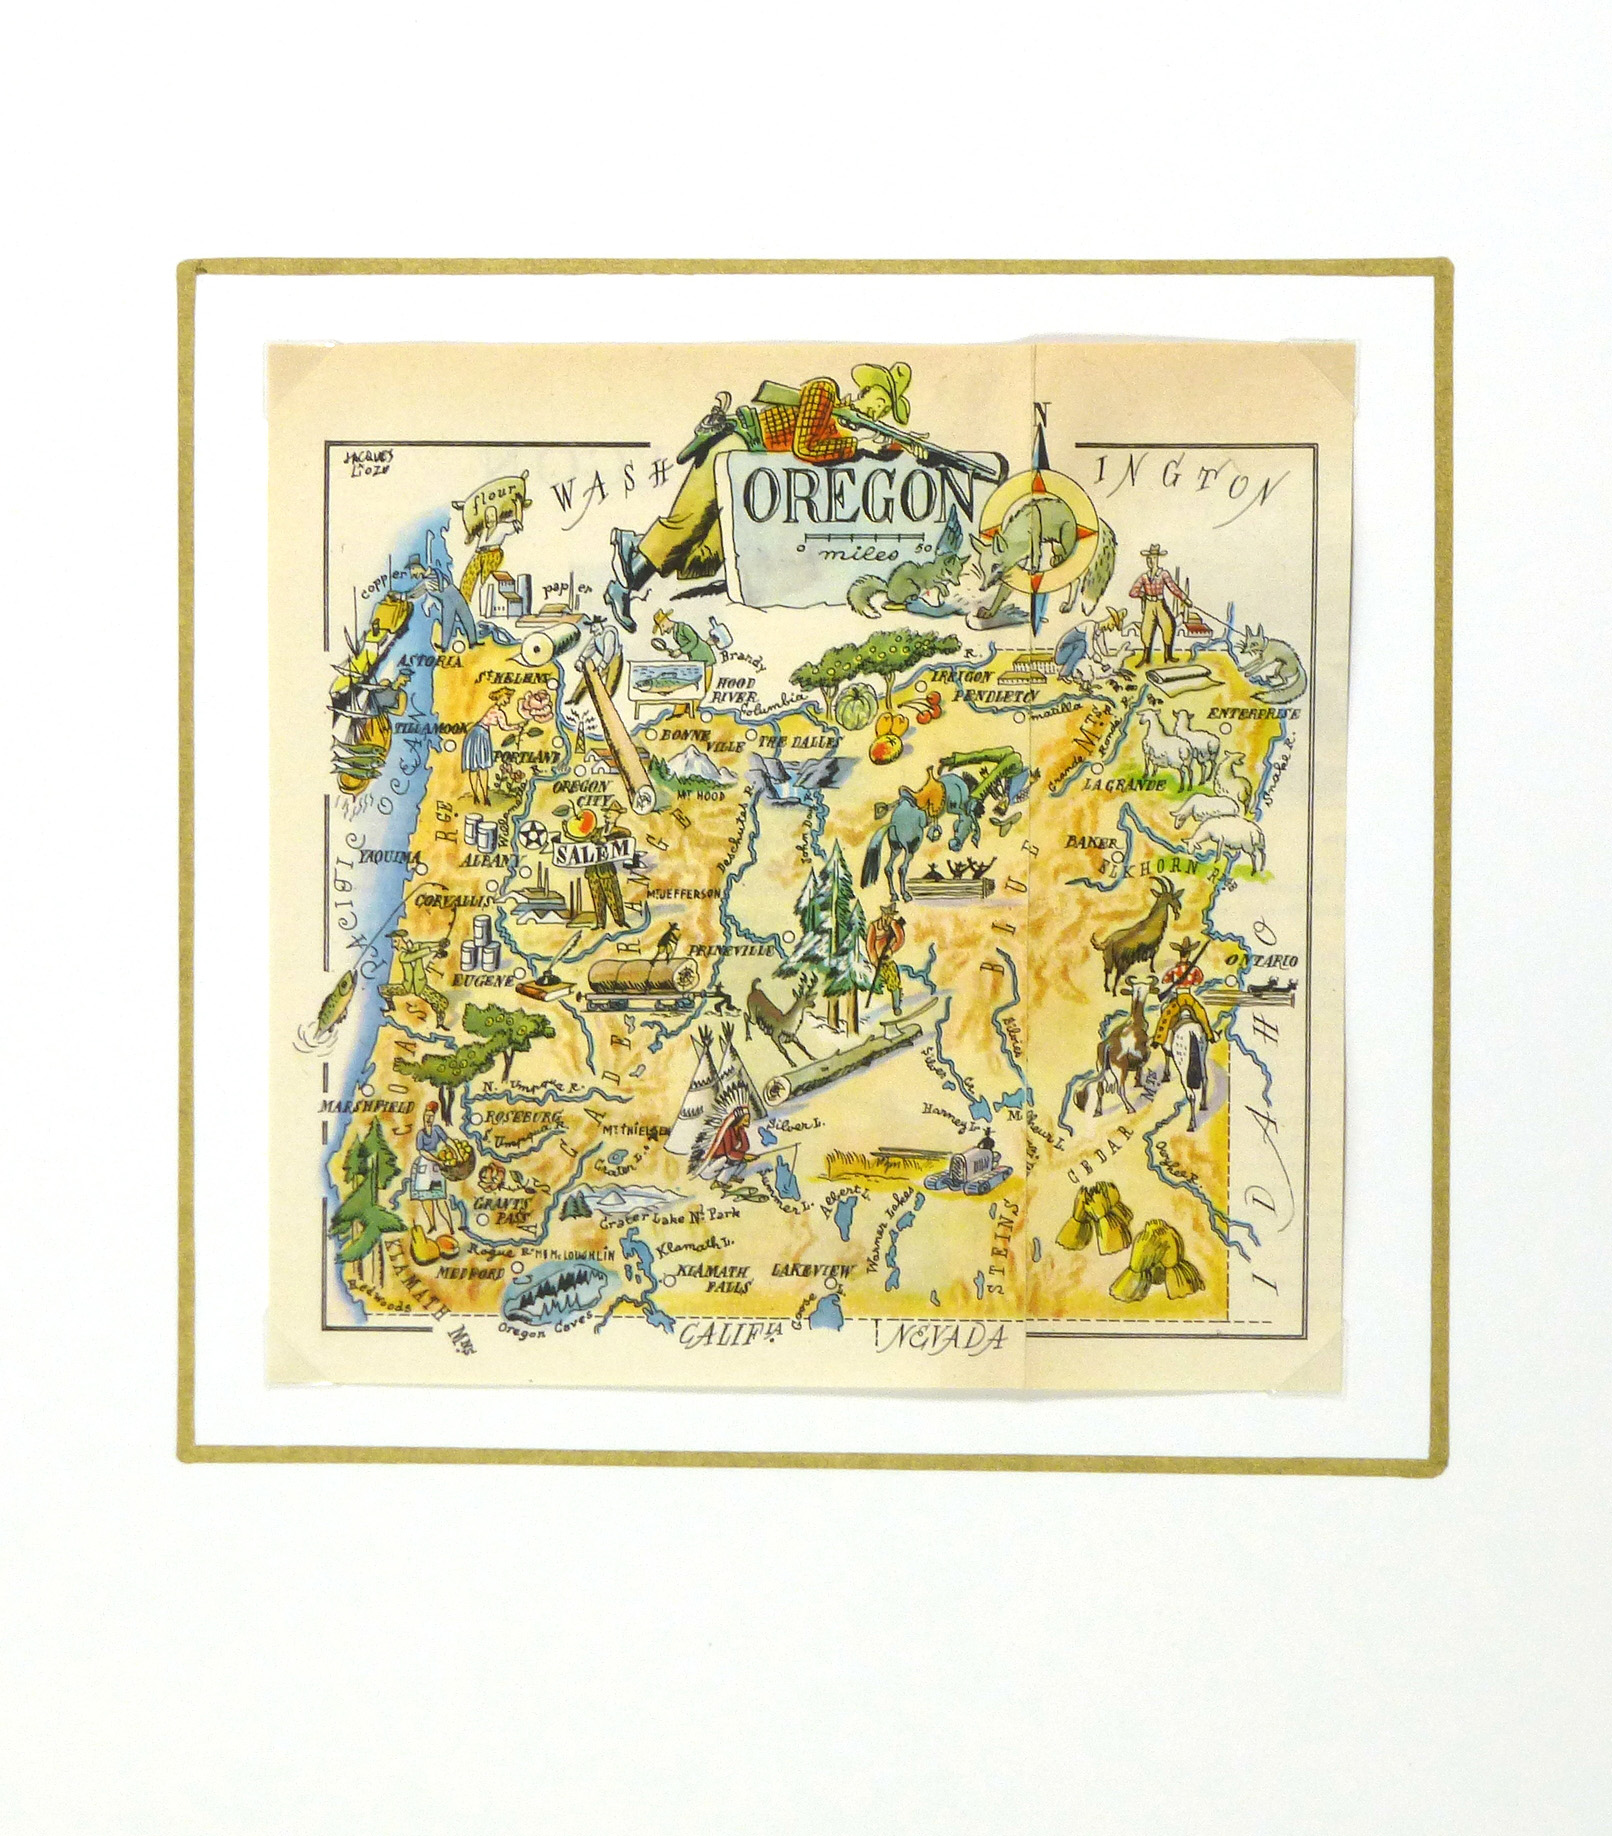 Oregon Pictorial Map, 1946-matted-6281K